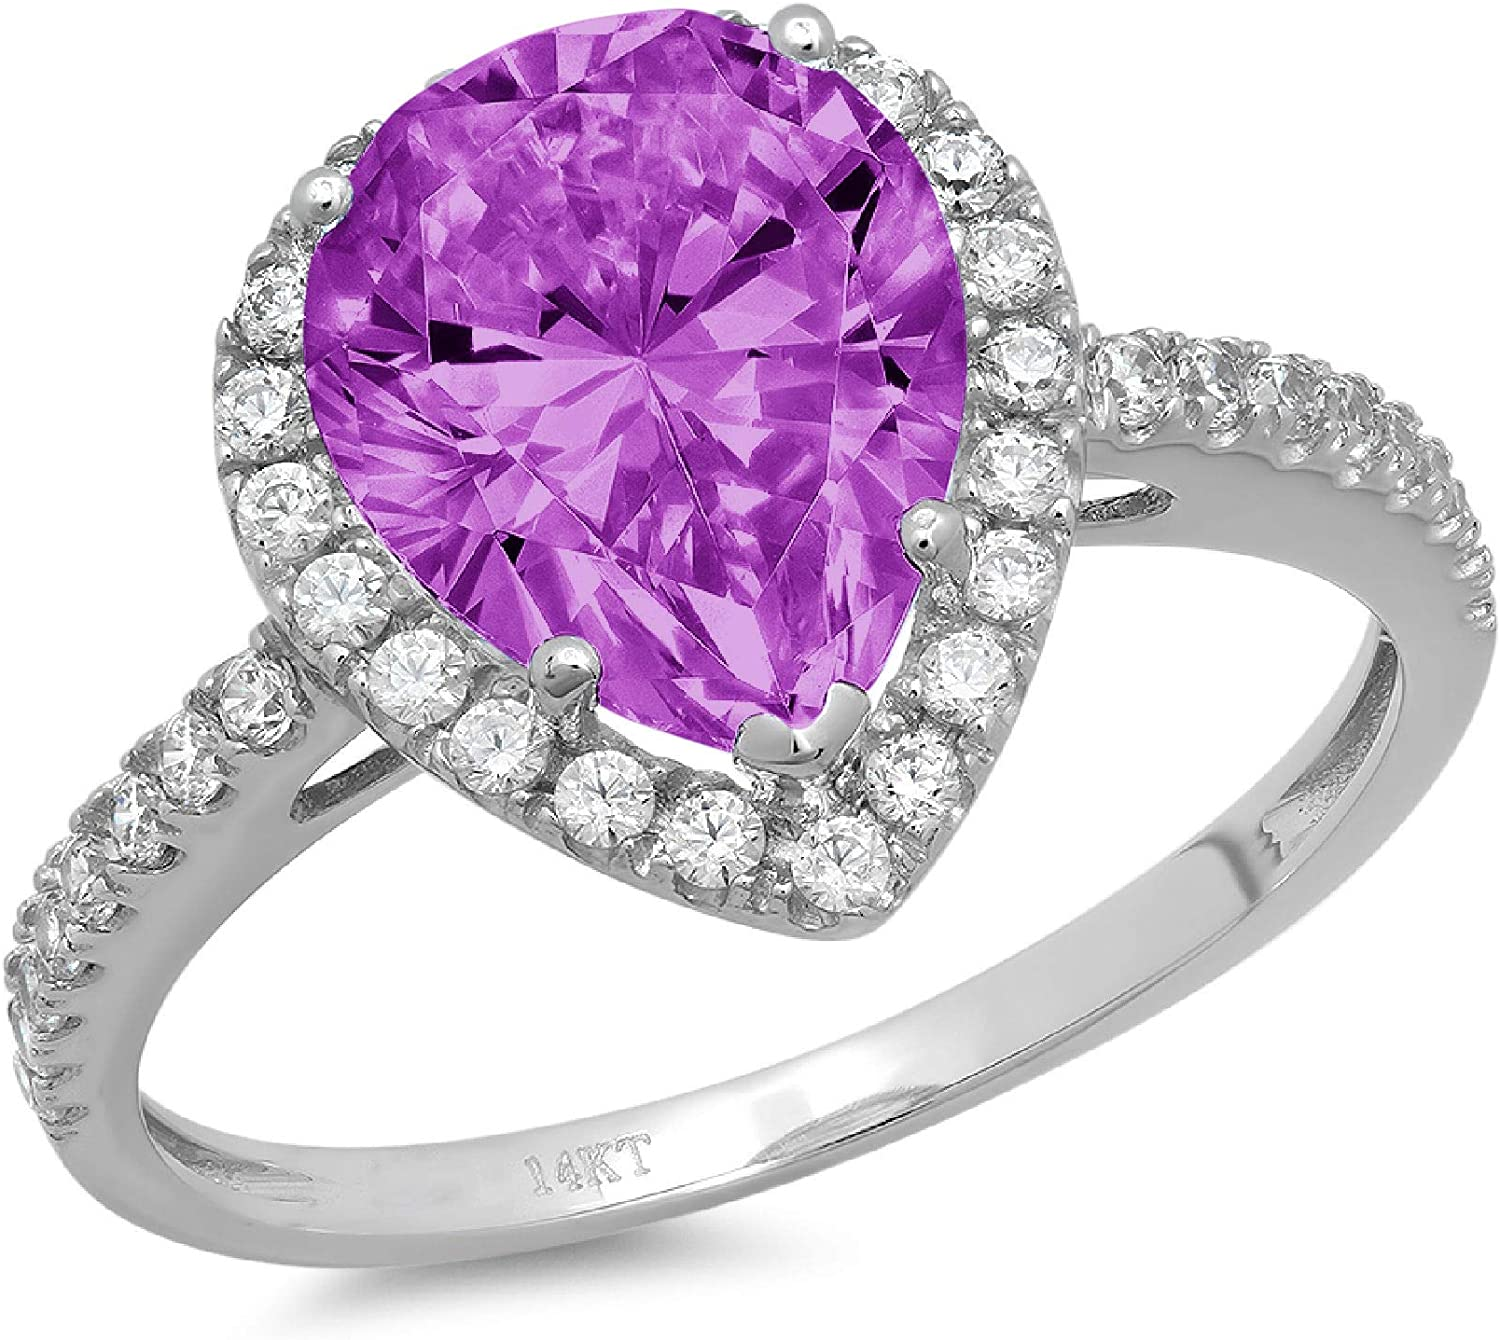 NEW before selling 2.5 Brilliant Pear Cut Solitaire Overseas parallel import regular item with Genui Stunning Accent Halo